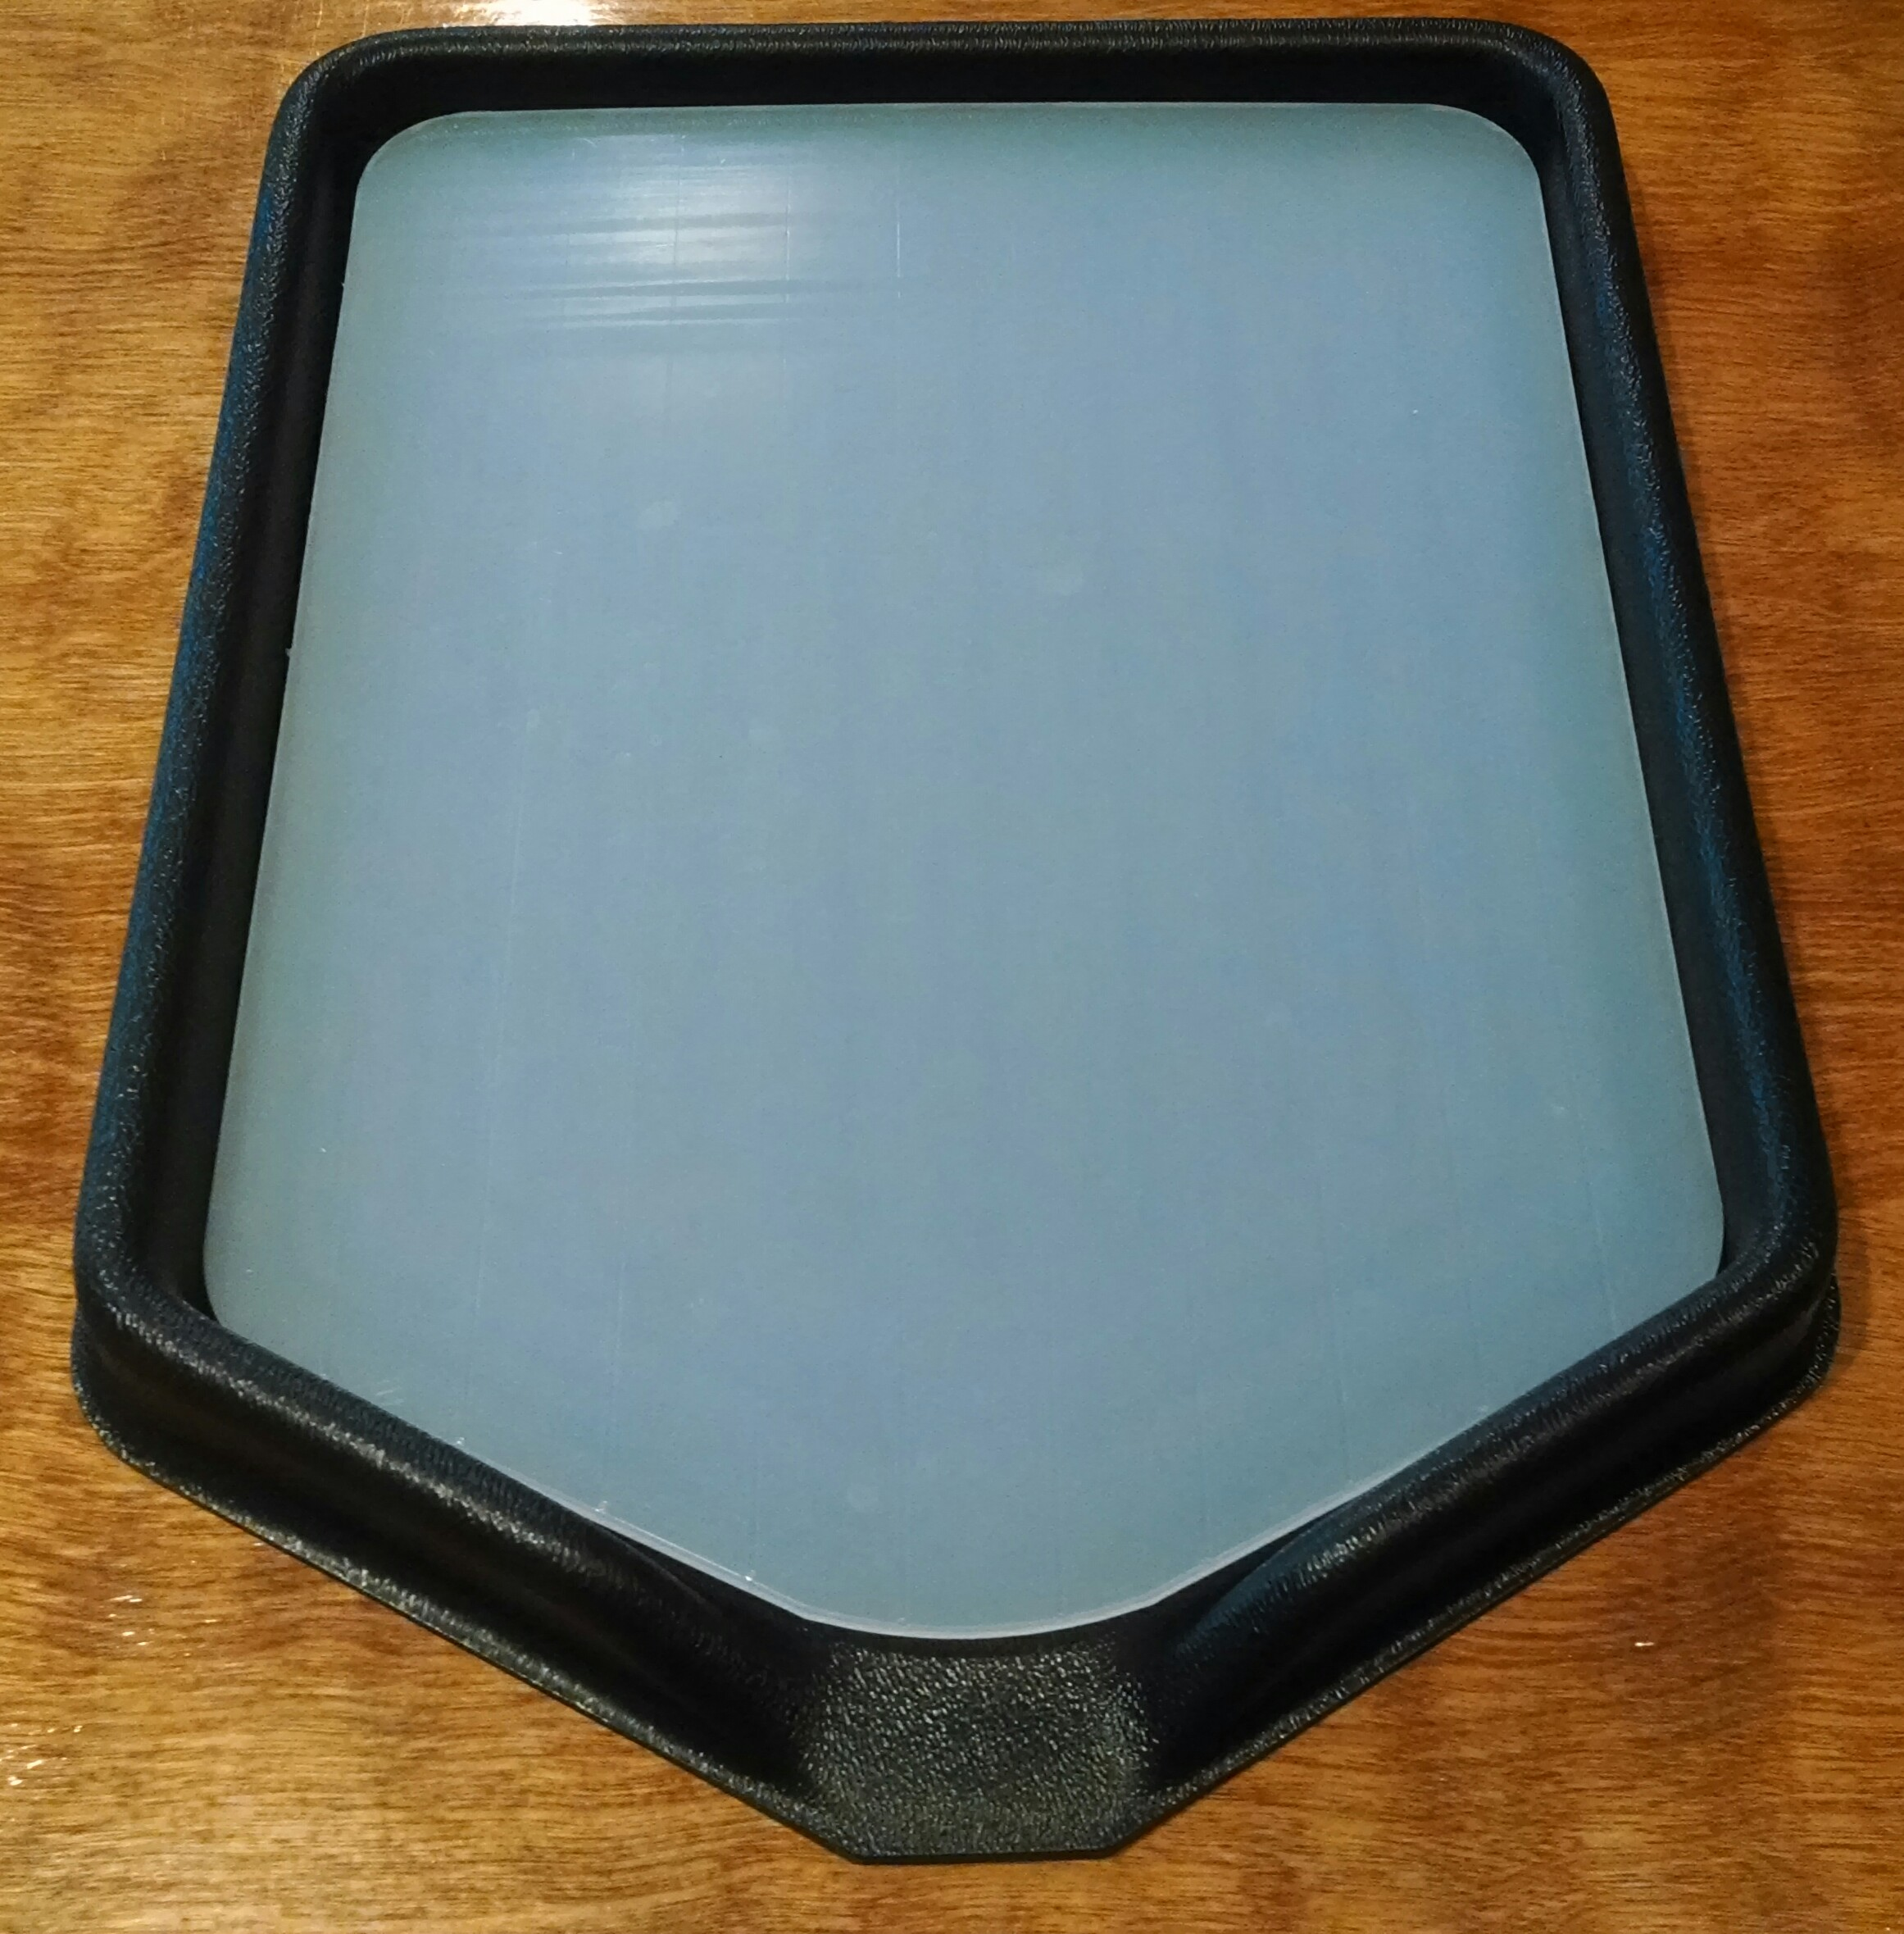 Draining Tray with Insert